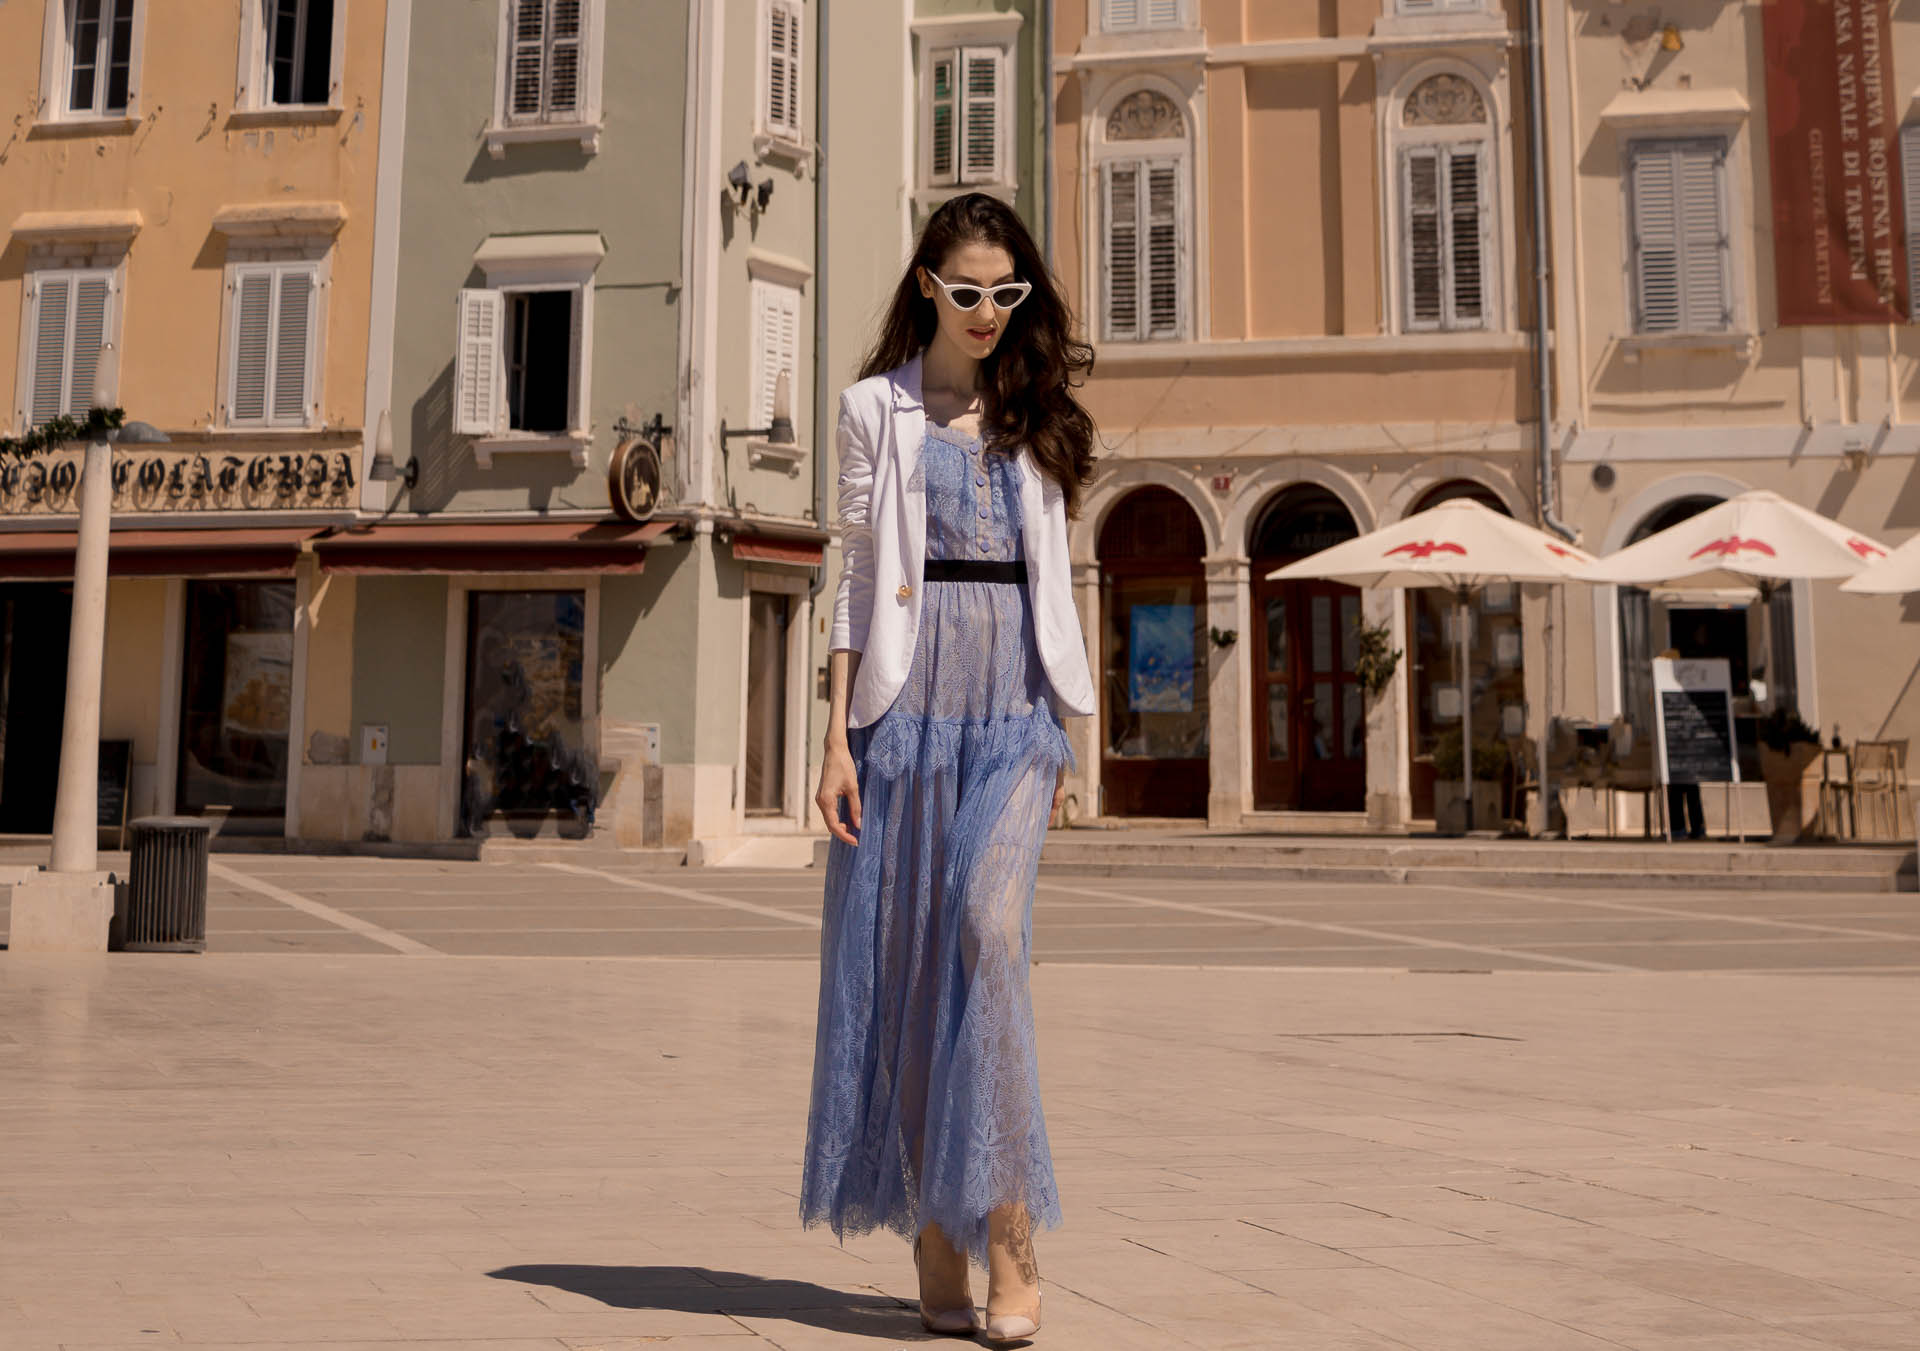 Veronika Lipar Fashion Blogger of Brunette from Wall Street dressed in Self-Portrait blue lace dress, white single button blazer, blush Gianvito Rossi plexi pumps, white shoulder bag, Lespecs white cat eye sunglasses while walking in the port in Piran